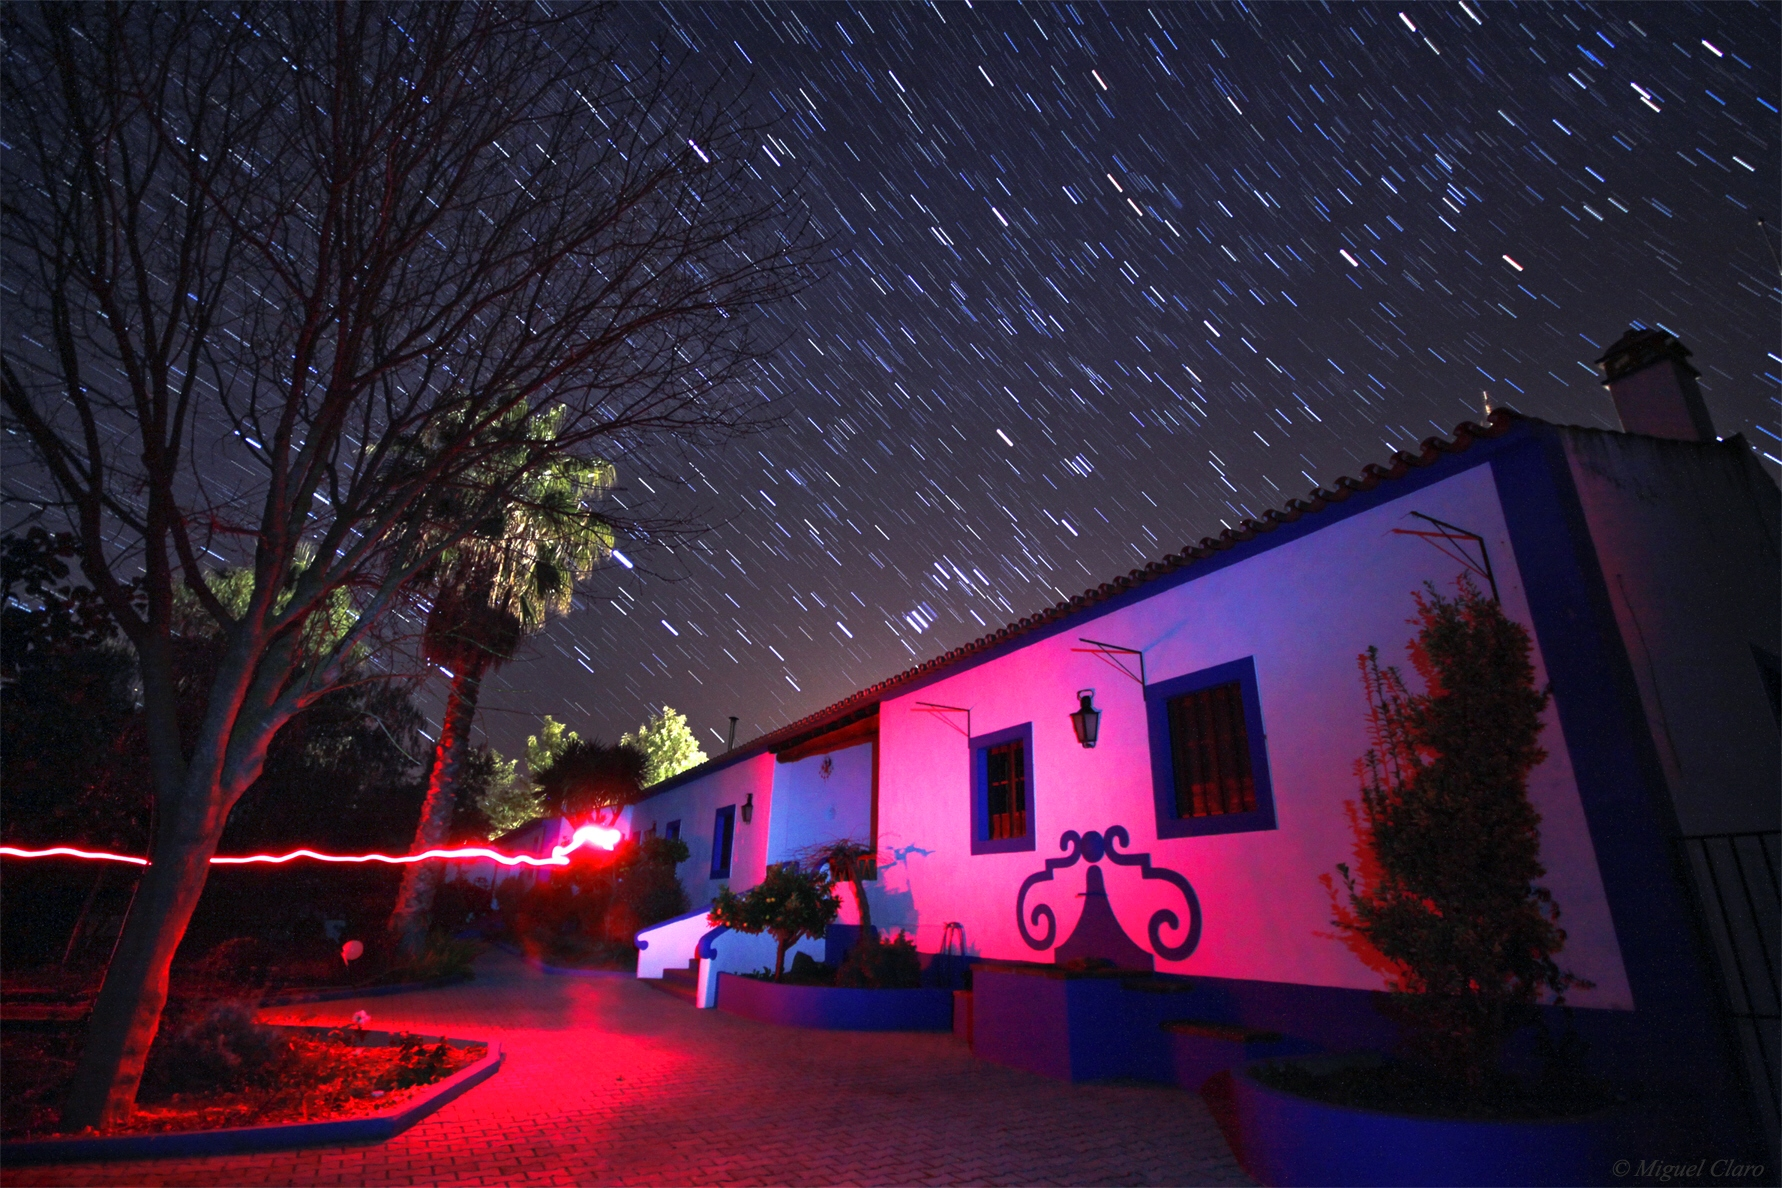 <h5>Monte Alerta, a rural hotel full of stars</h5>